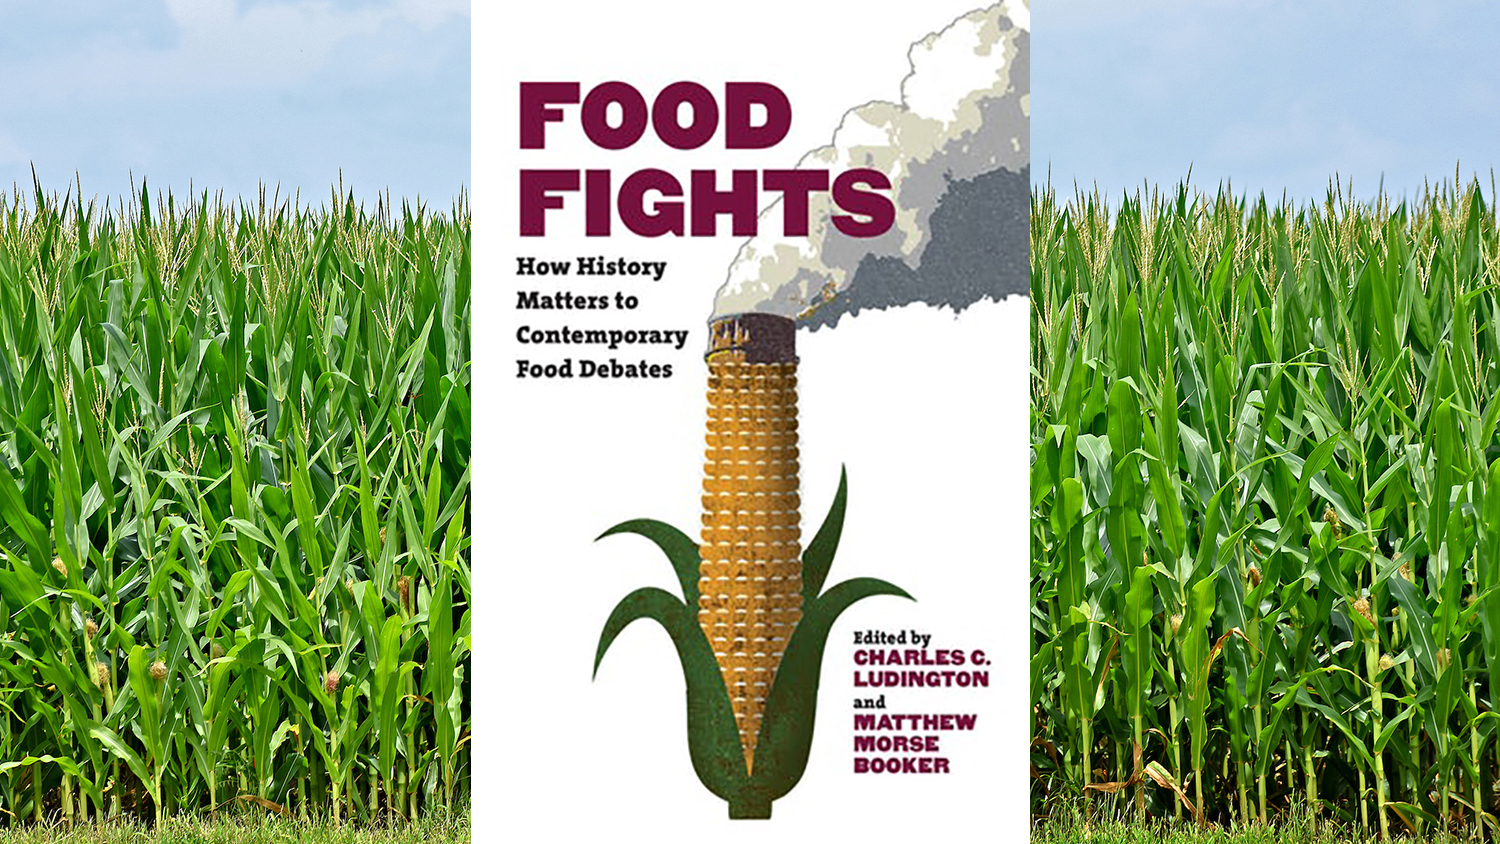 cover of book superimposed over a field of corn